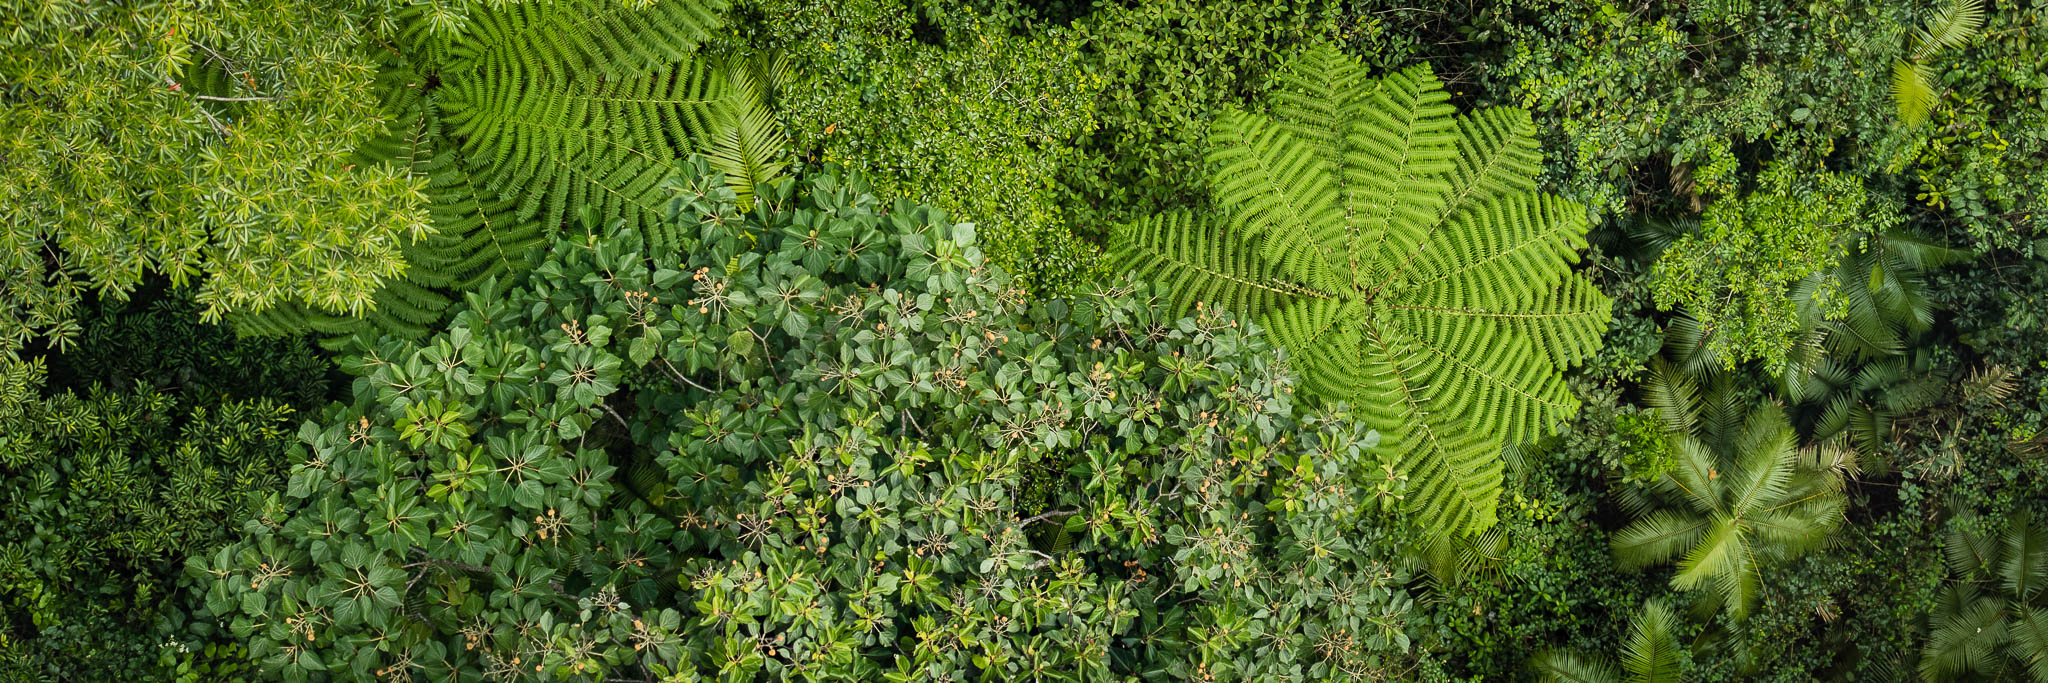 Tropical Forest Canopy